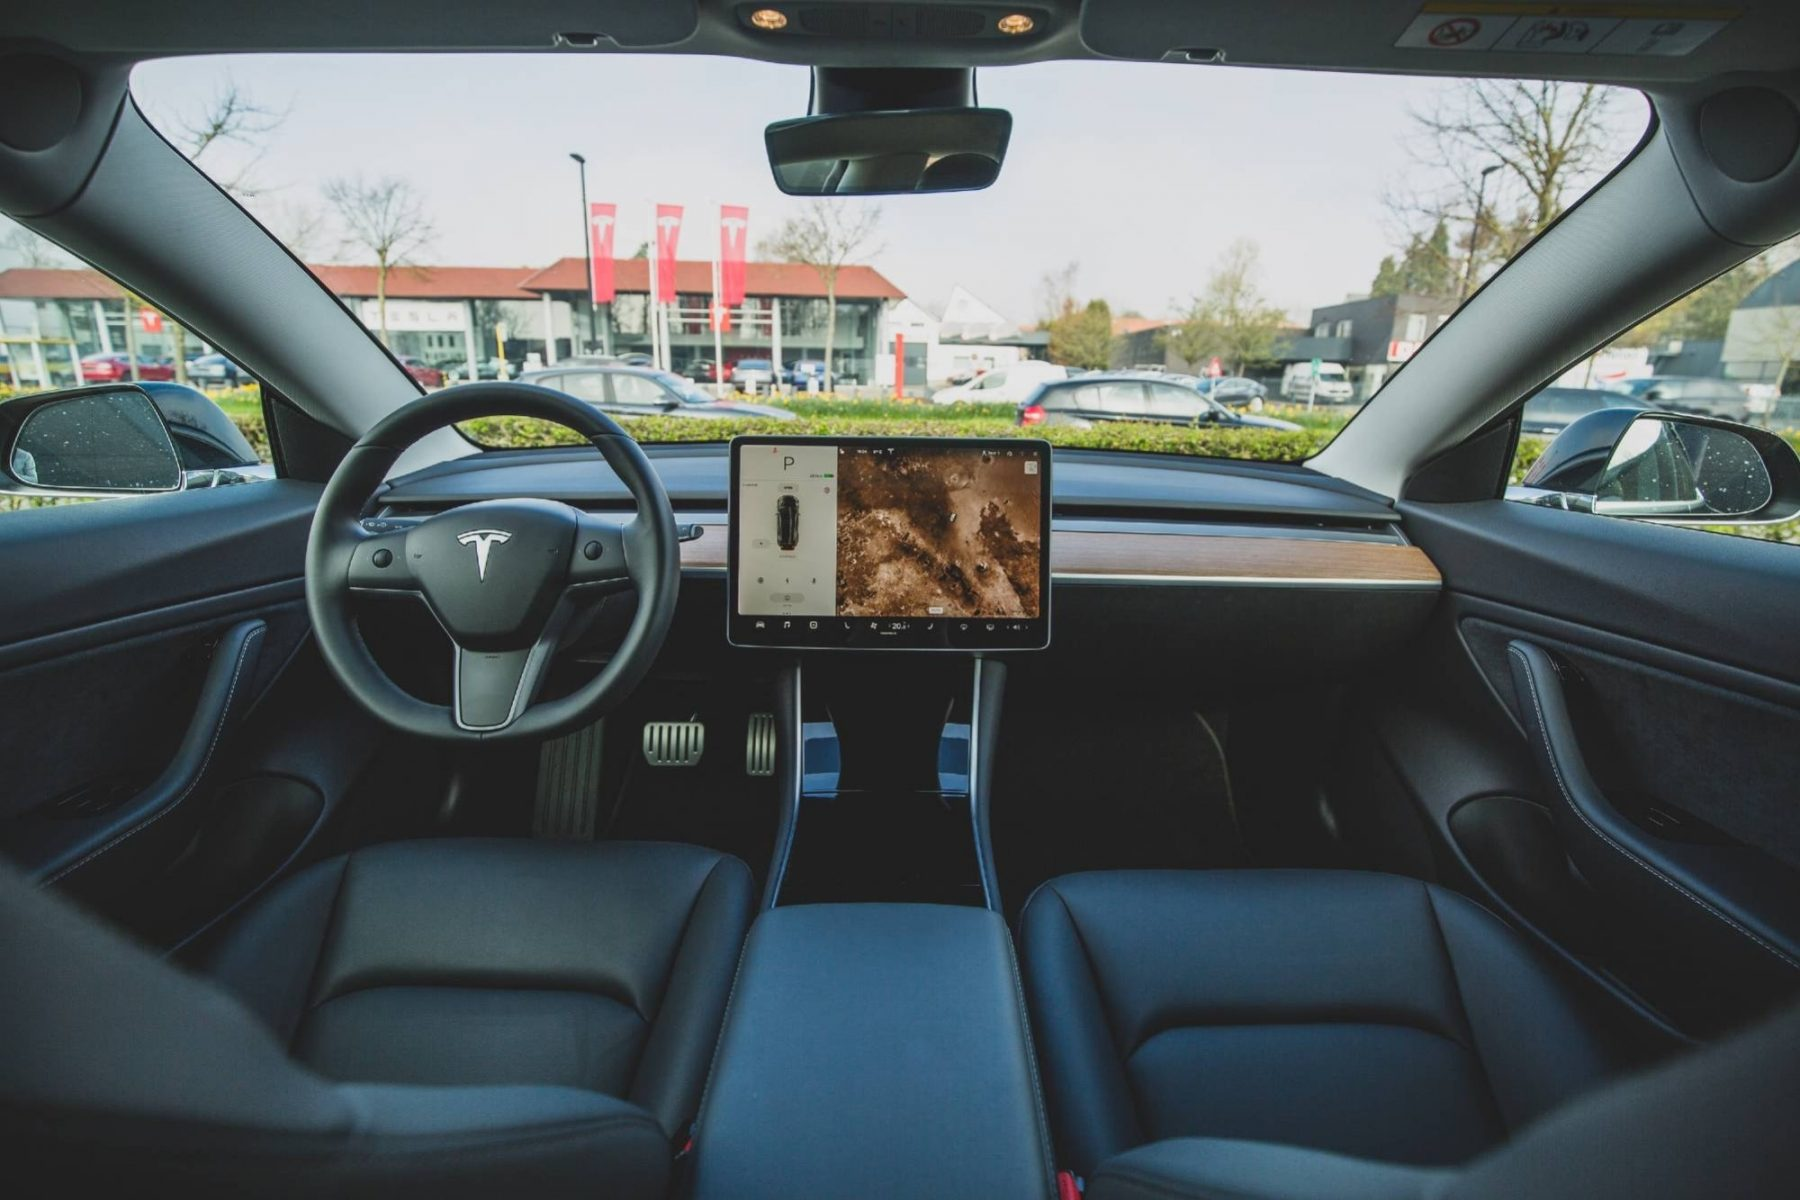 the-united-states-to-investigate-tesla's-'autopilot'-system-after-11-accidents